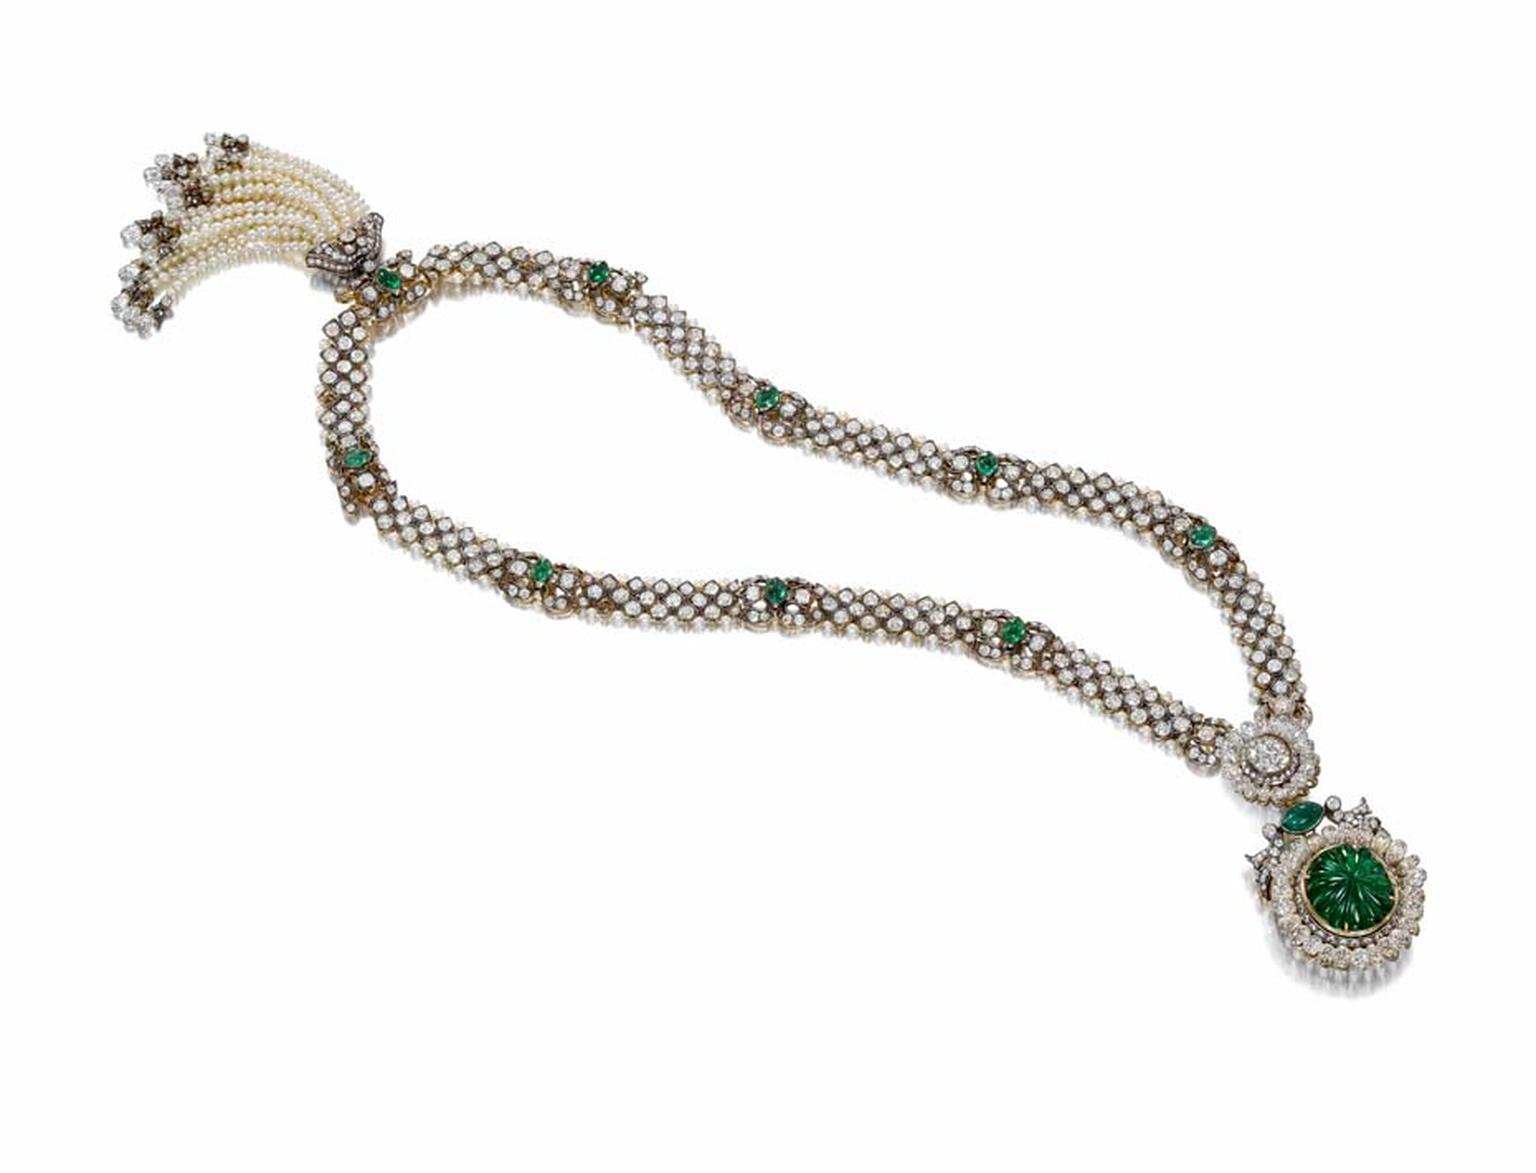 The attention to detail displayed on the necklace to be sold by Bonhams is nothing short of amazing. Every single surface of this opulent statement piece is bejewelled, including the back of the necklace, even though it is hidden when worn.